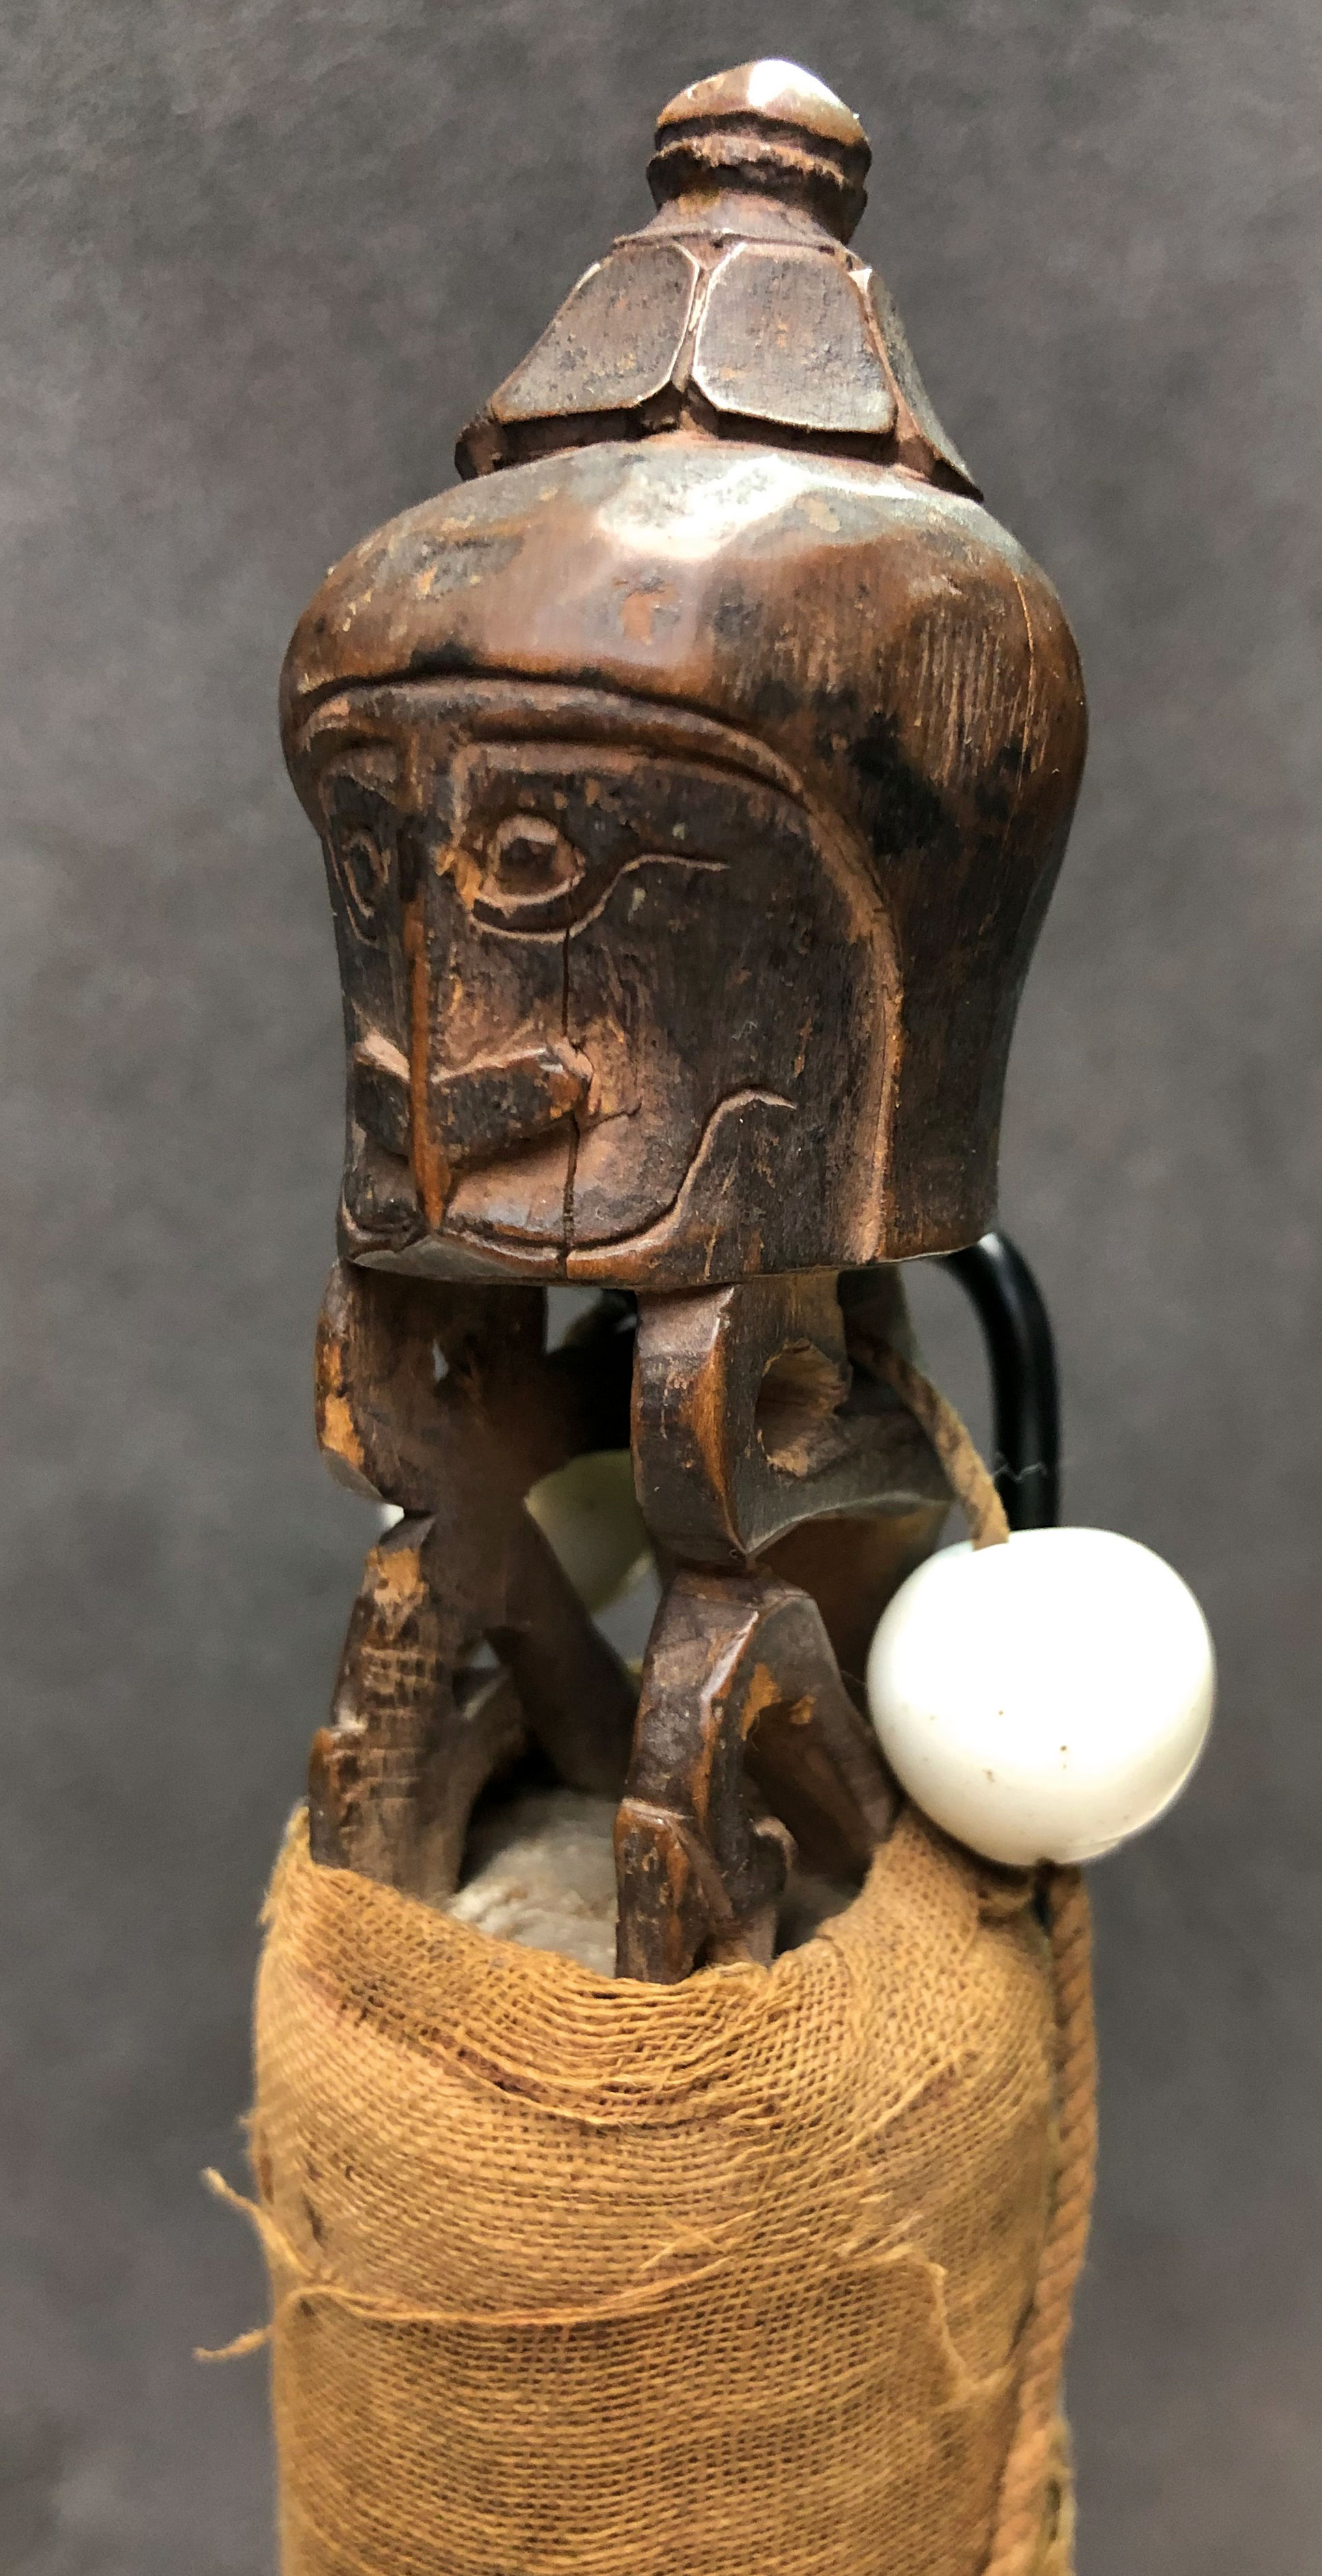 A korwar stick amulet (h. c.7 cm., figure) with two white heirloom beads; the lower part is wrapped in cotton. Groningen University Museum (the Netherlands), the Van Baaren Collection.